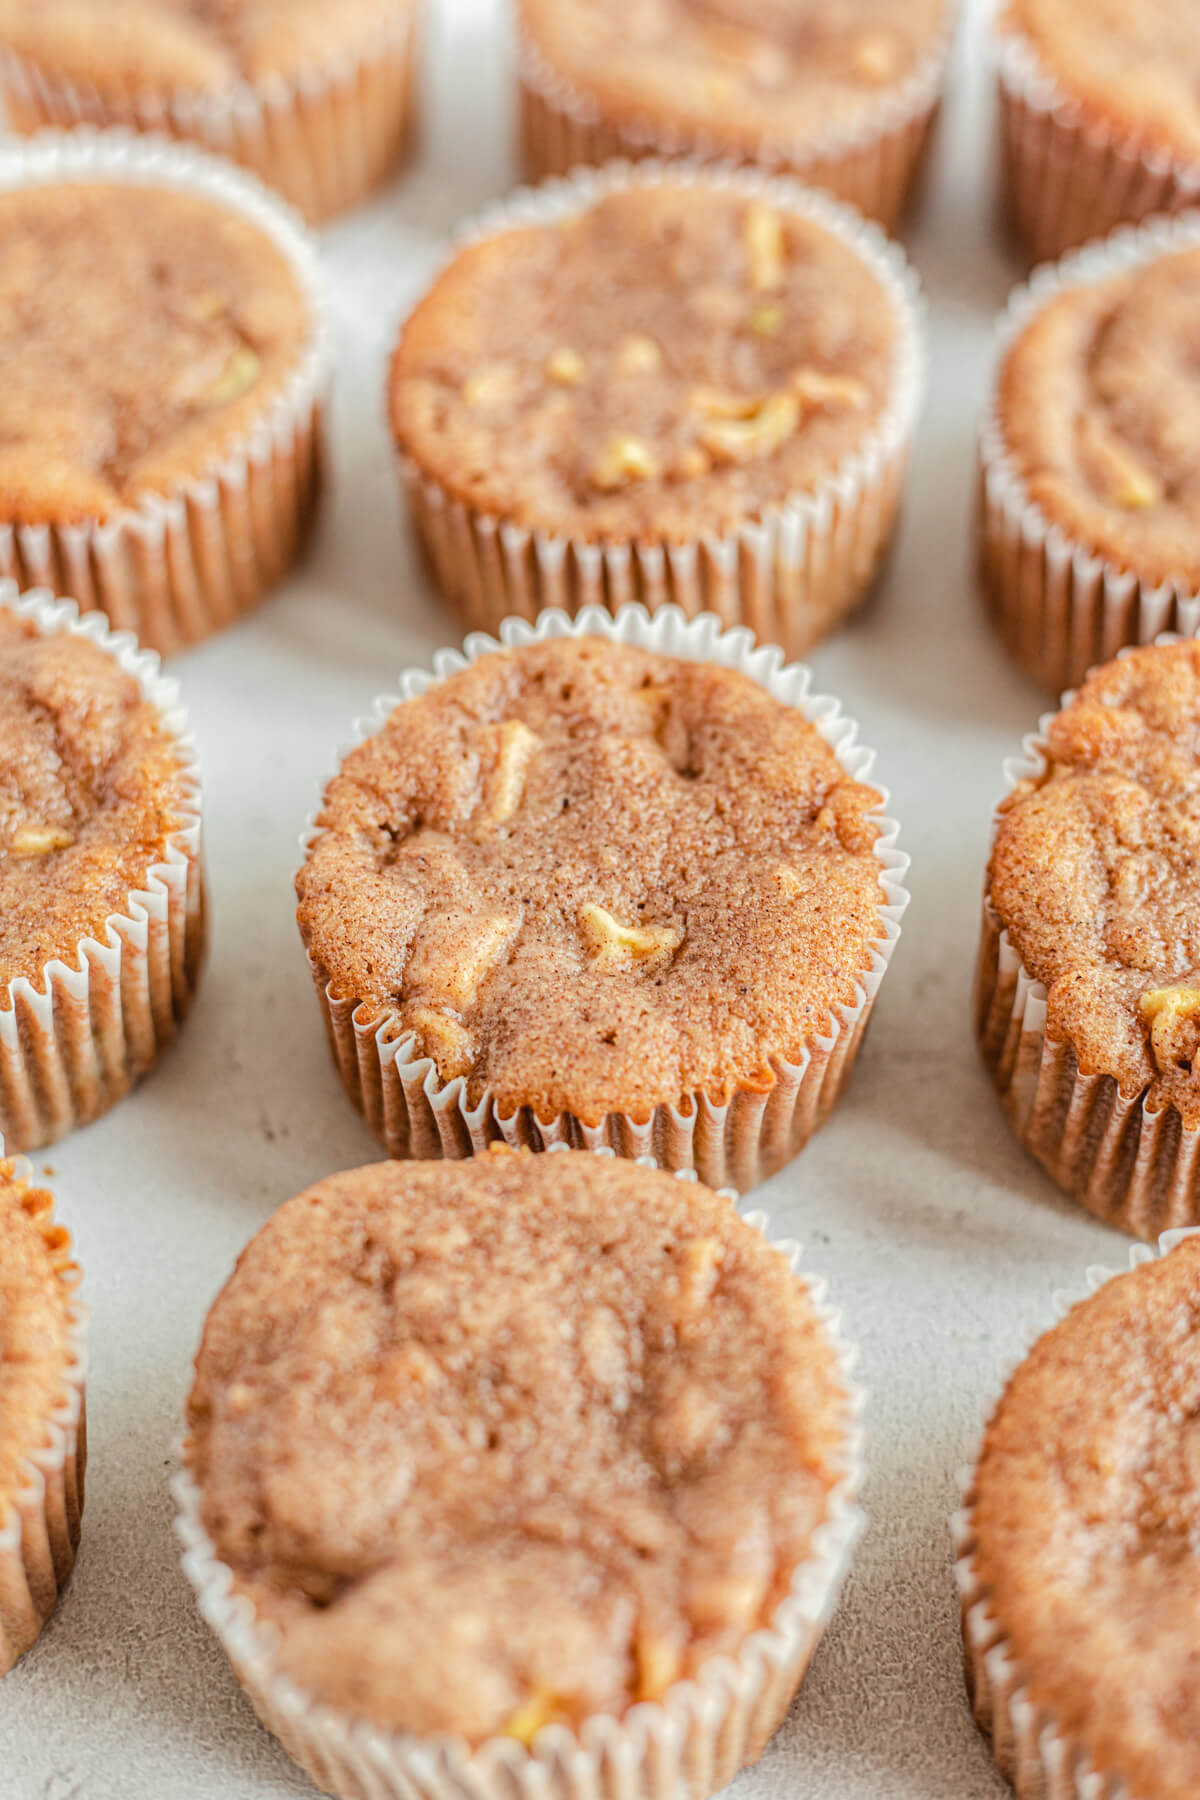 rows of unfrosted apple cupcakes